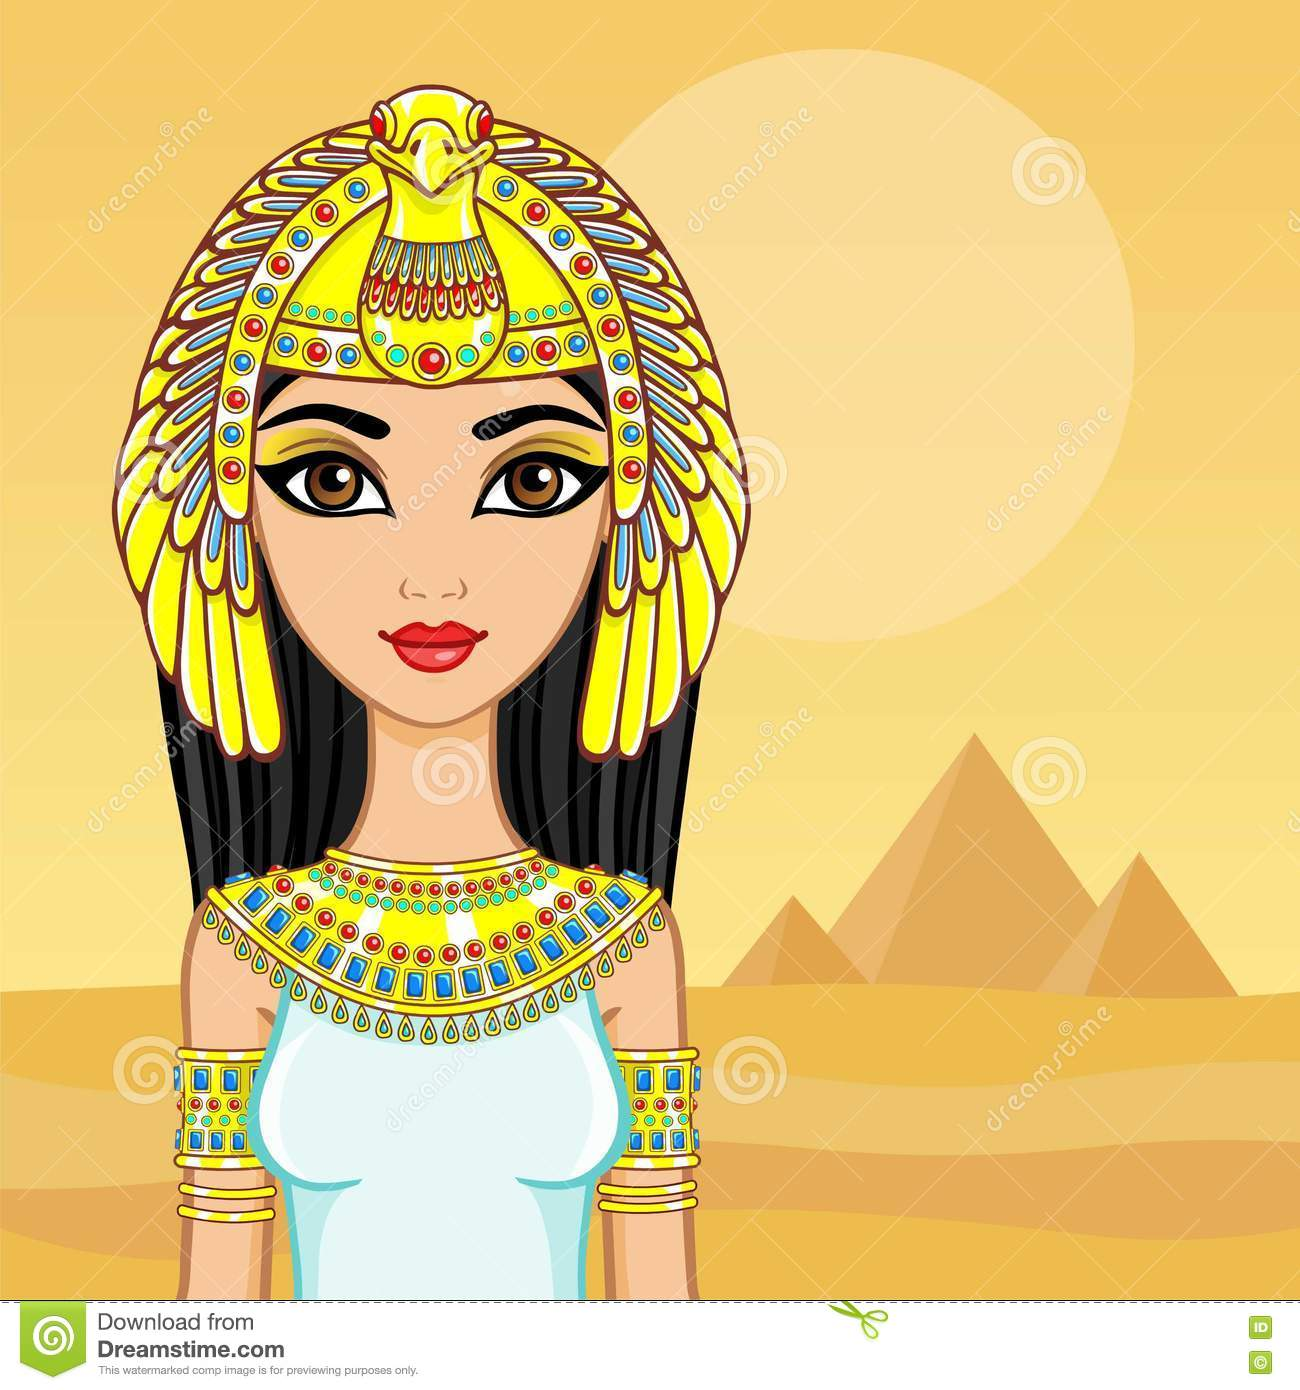 Animation Portrait Of The Egyptian Queen A Background A